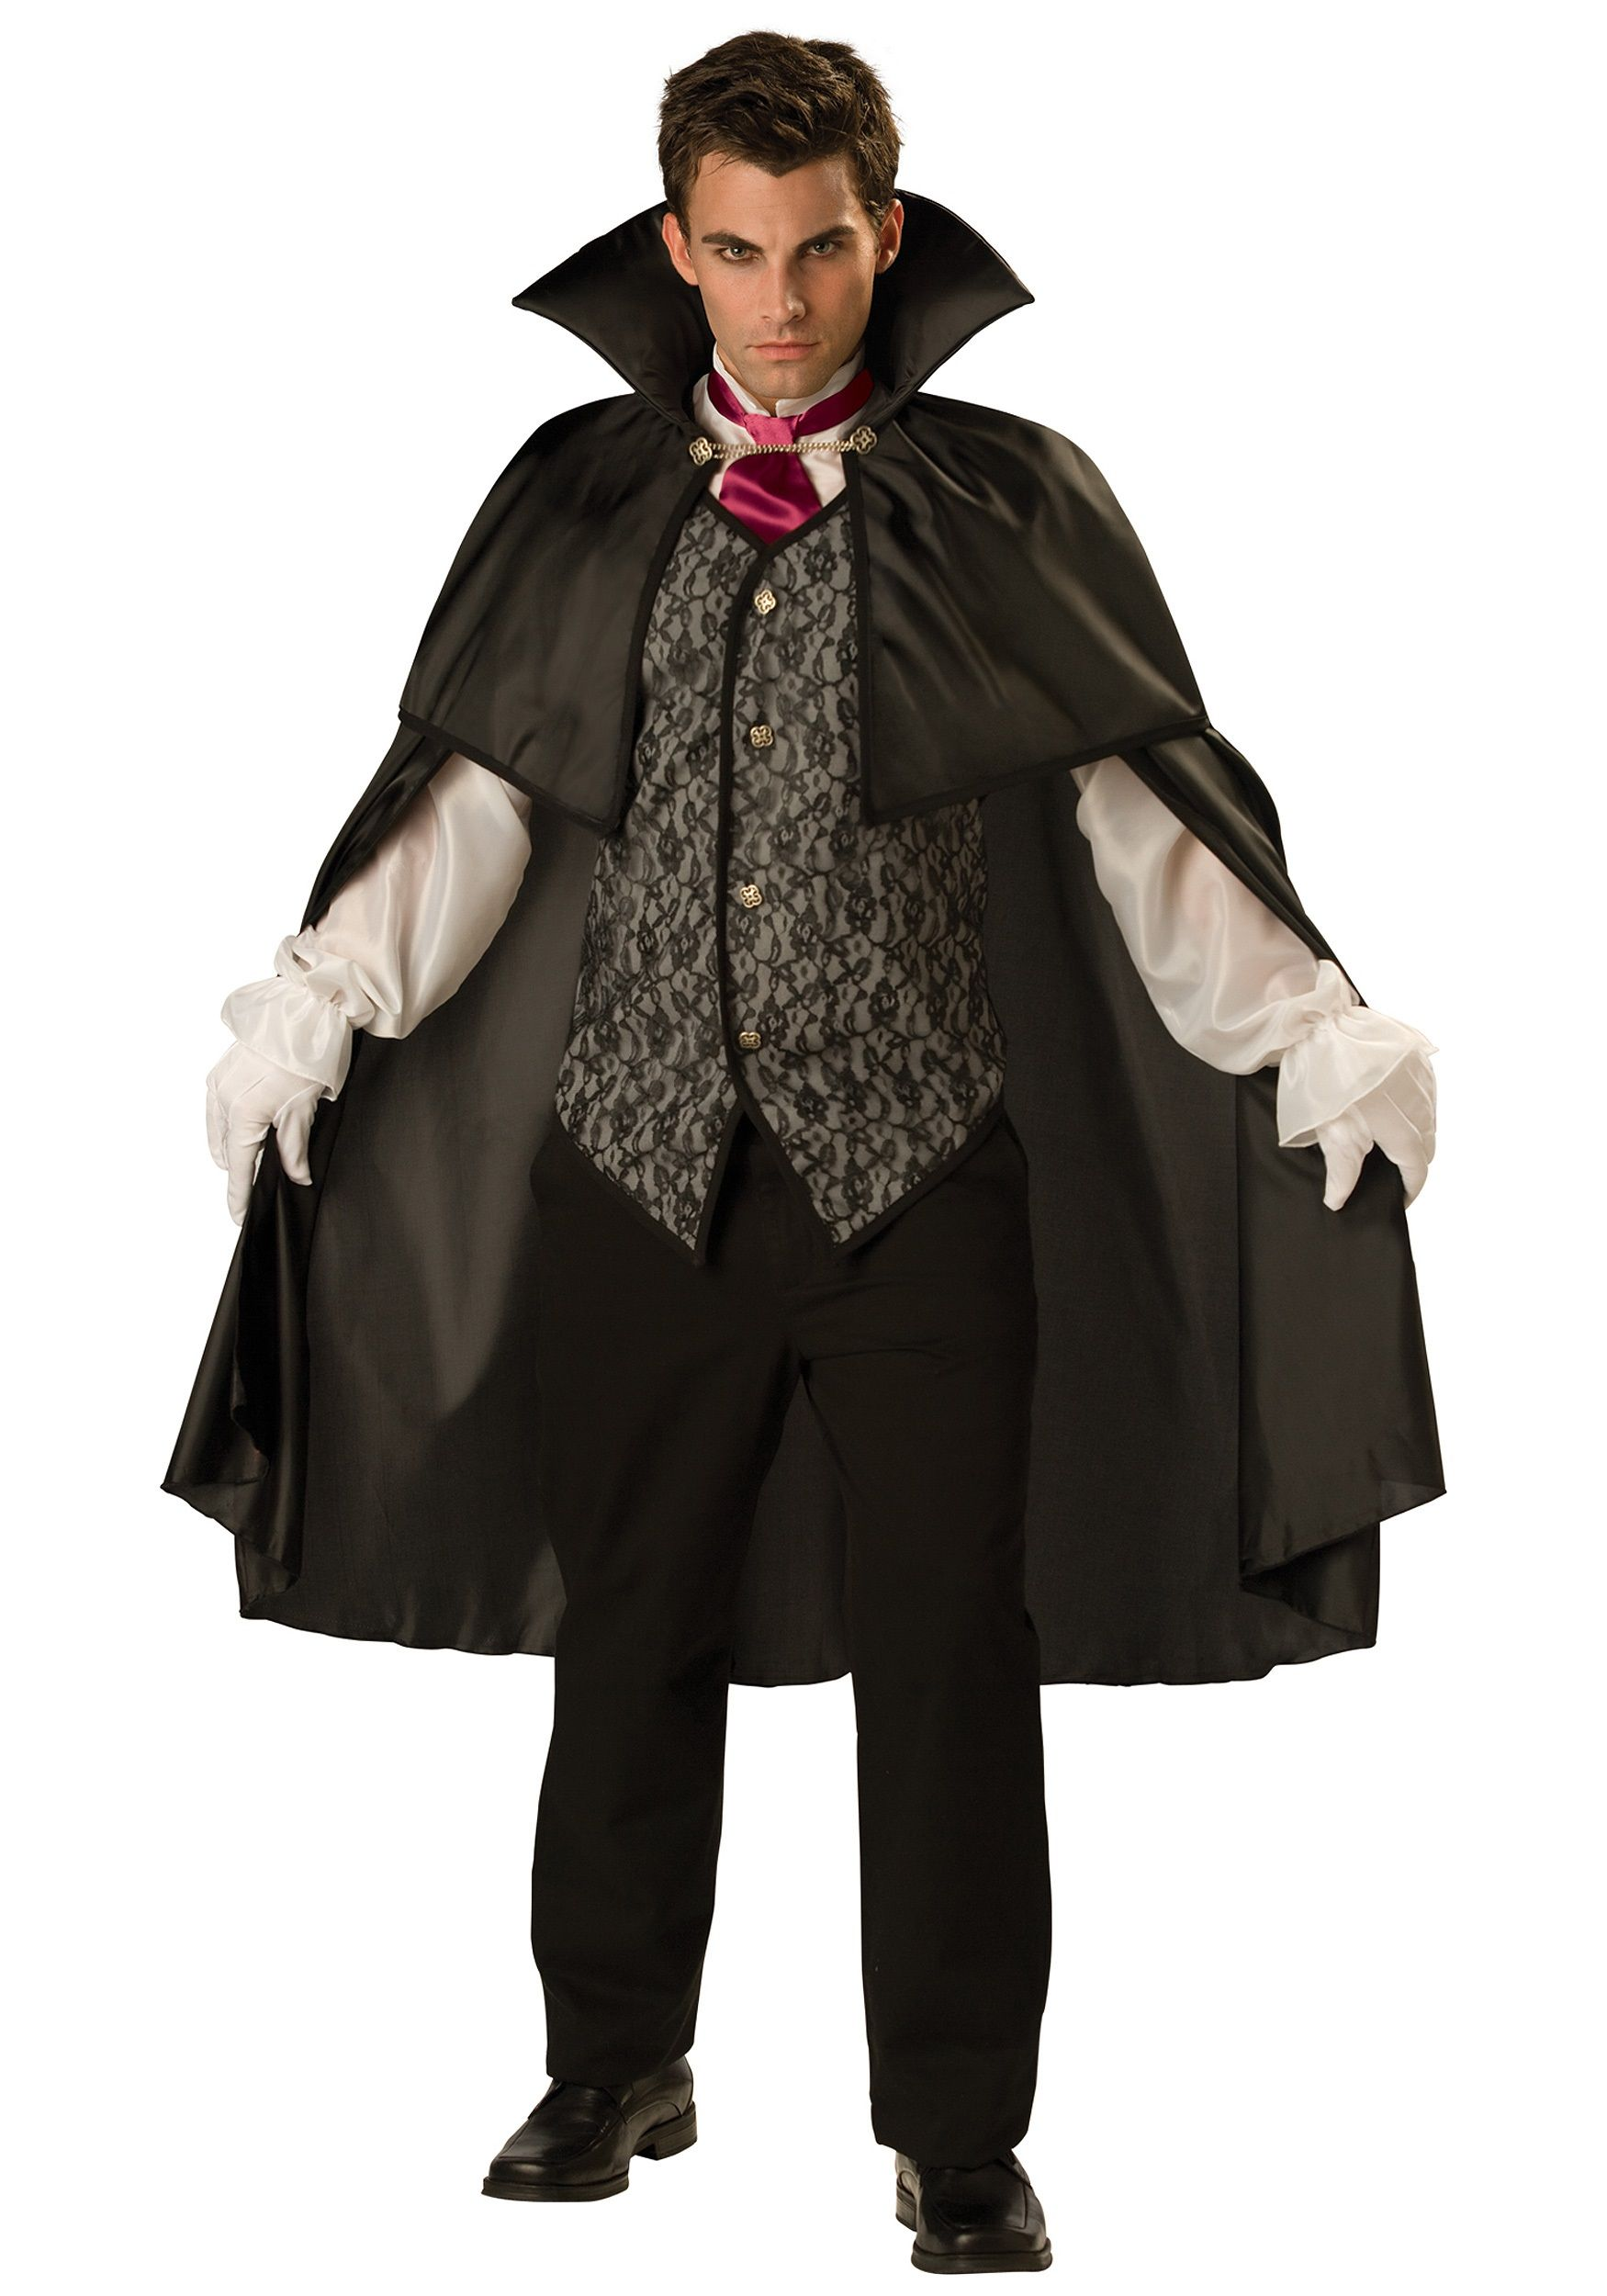 warlock costume ideas - Gary? | Halloween | Pinterest | Costumes ...